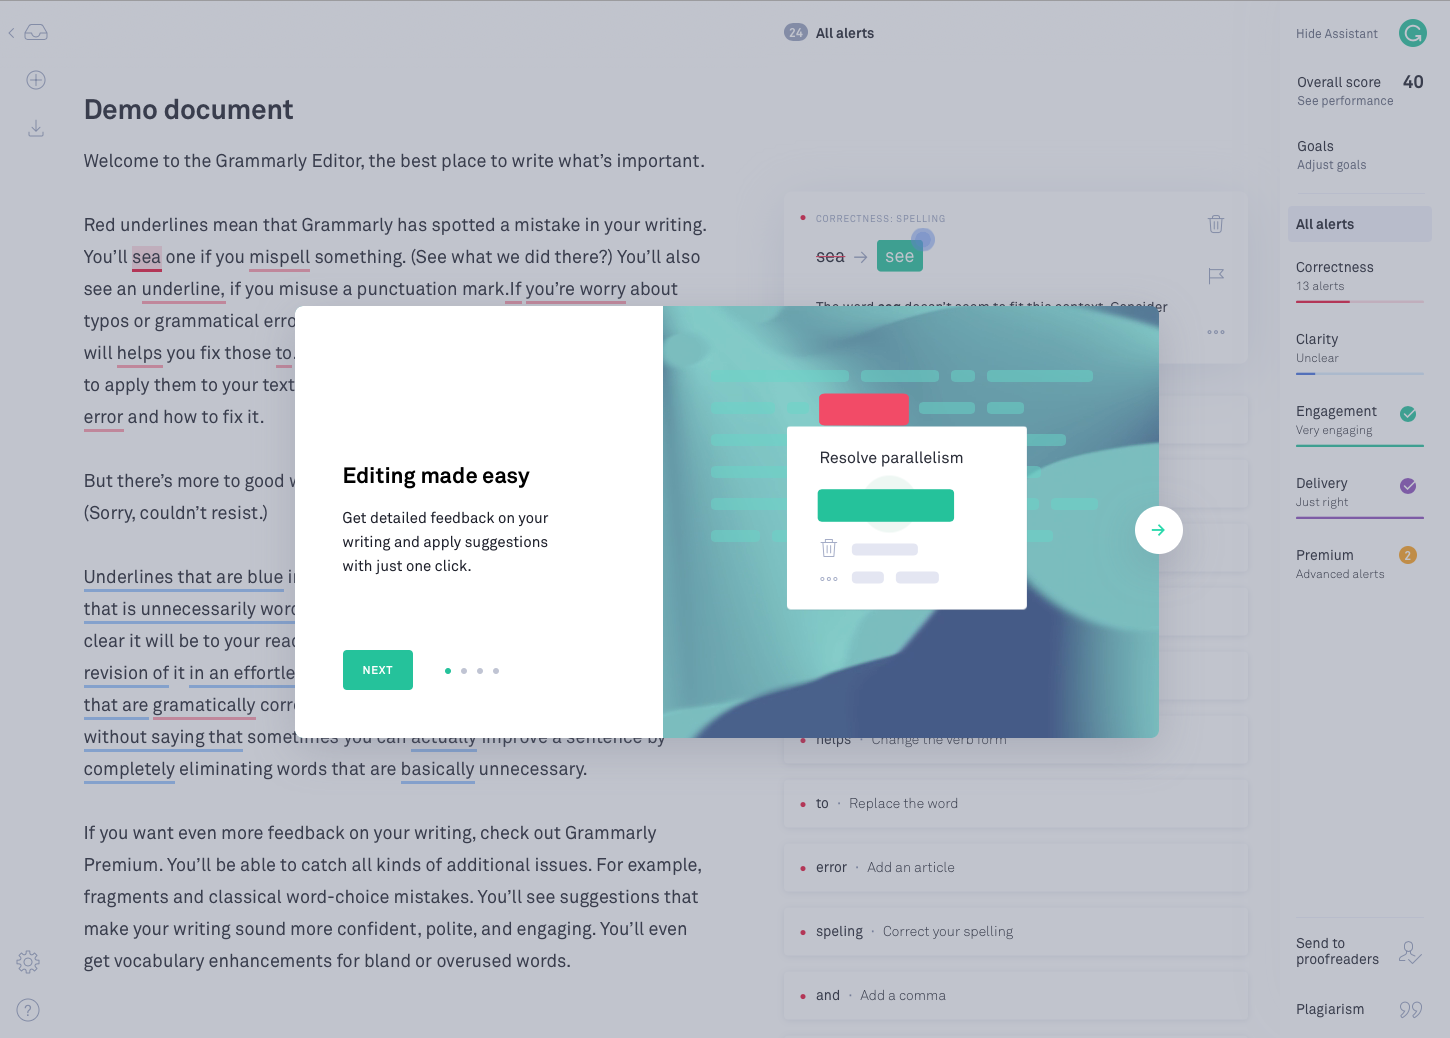 a screenshot image of grammarly's onboarding experience with a modal window